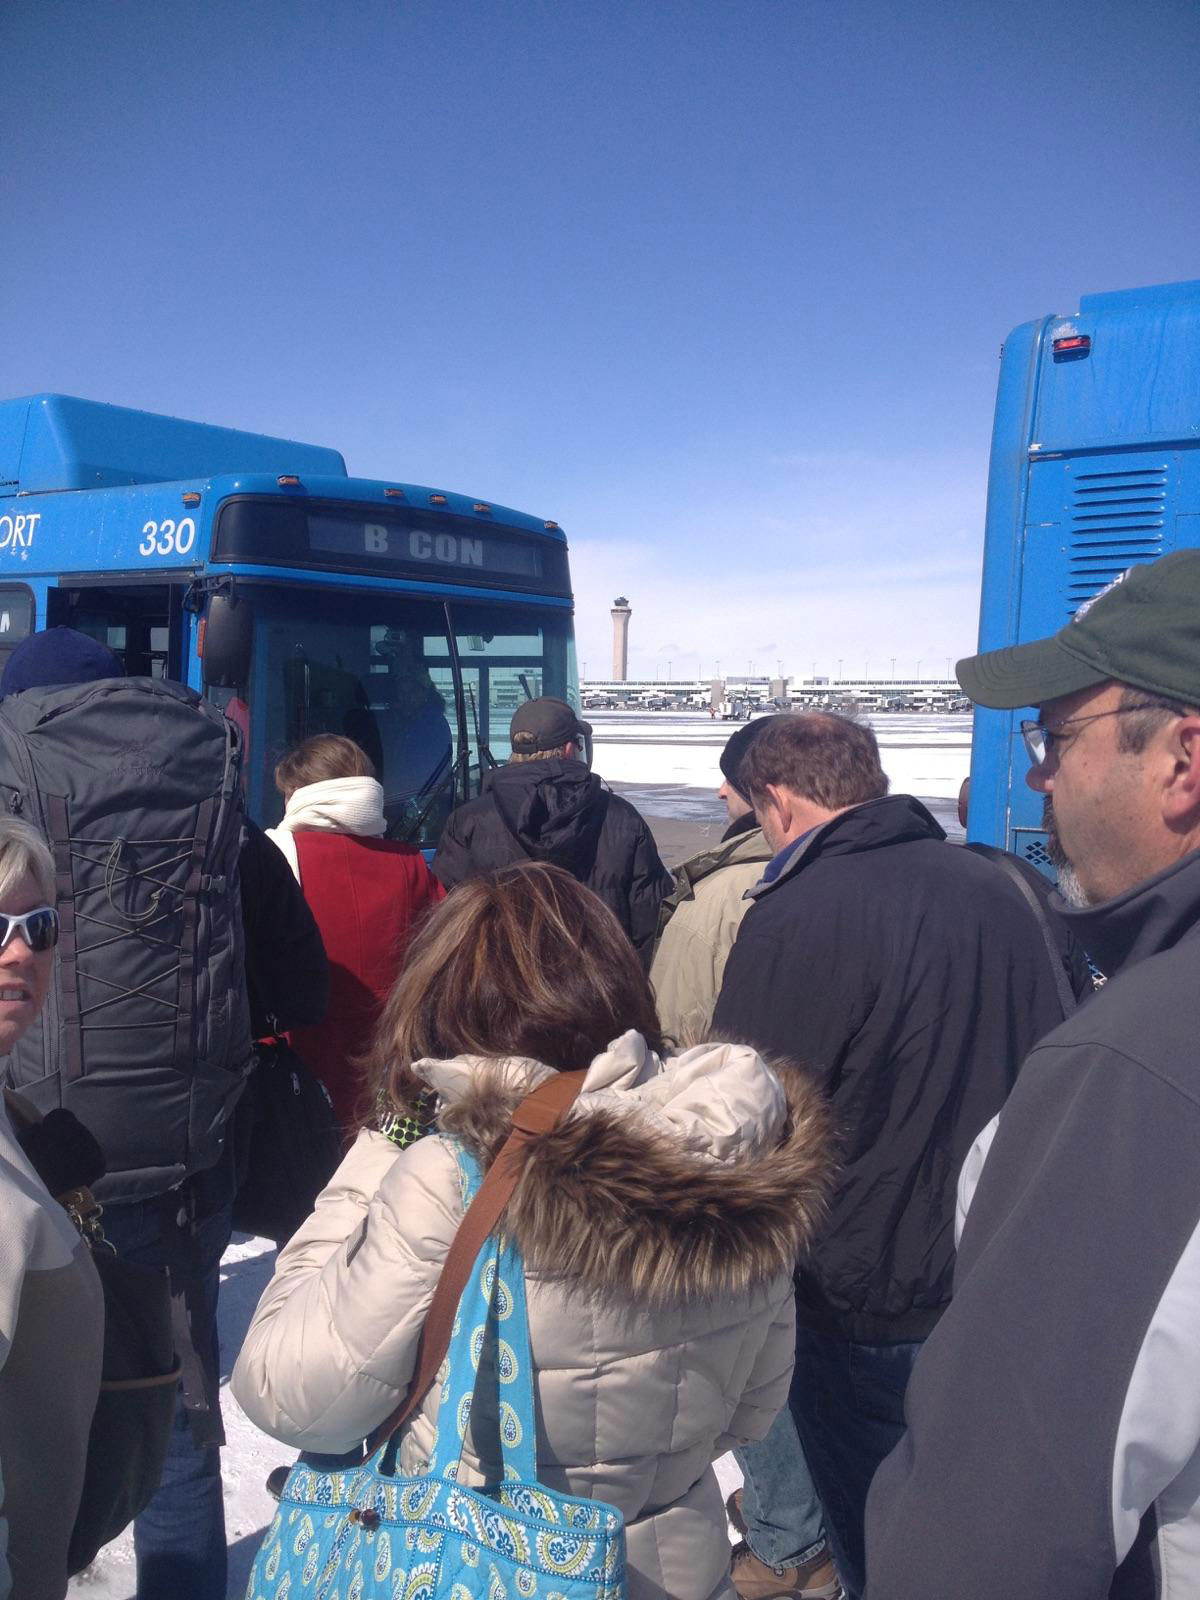 Passengers loading buses to the concourse (credit: Andy Aldridge)